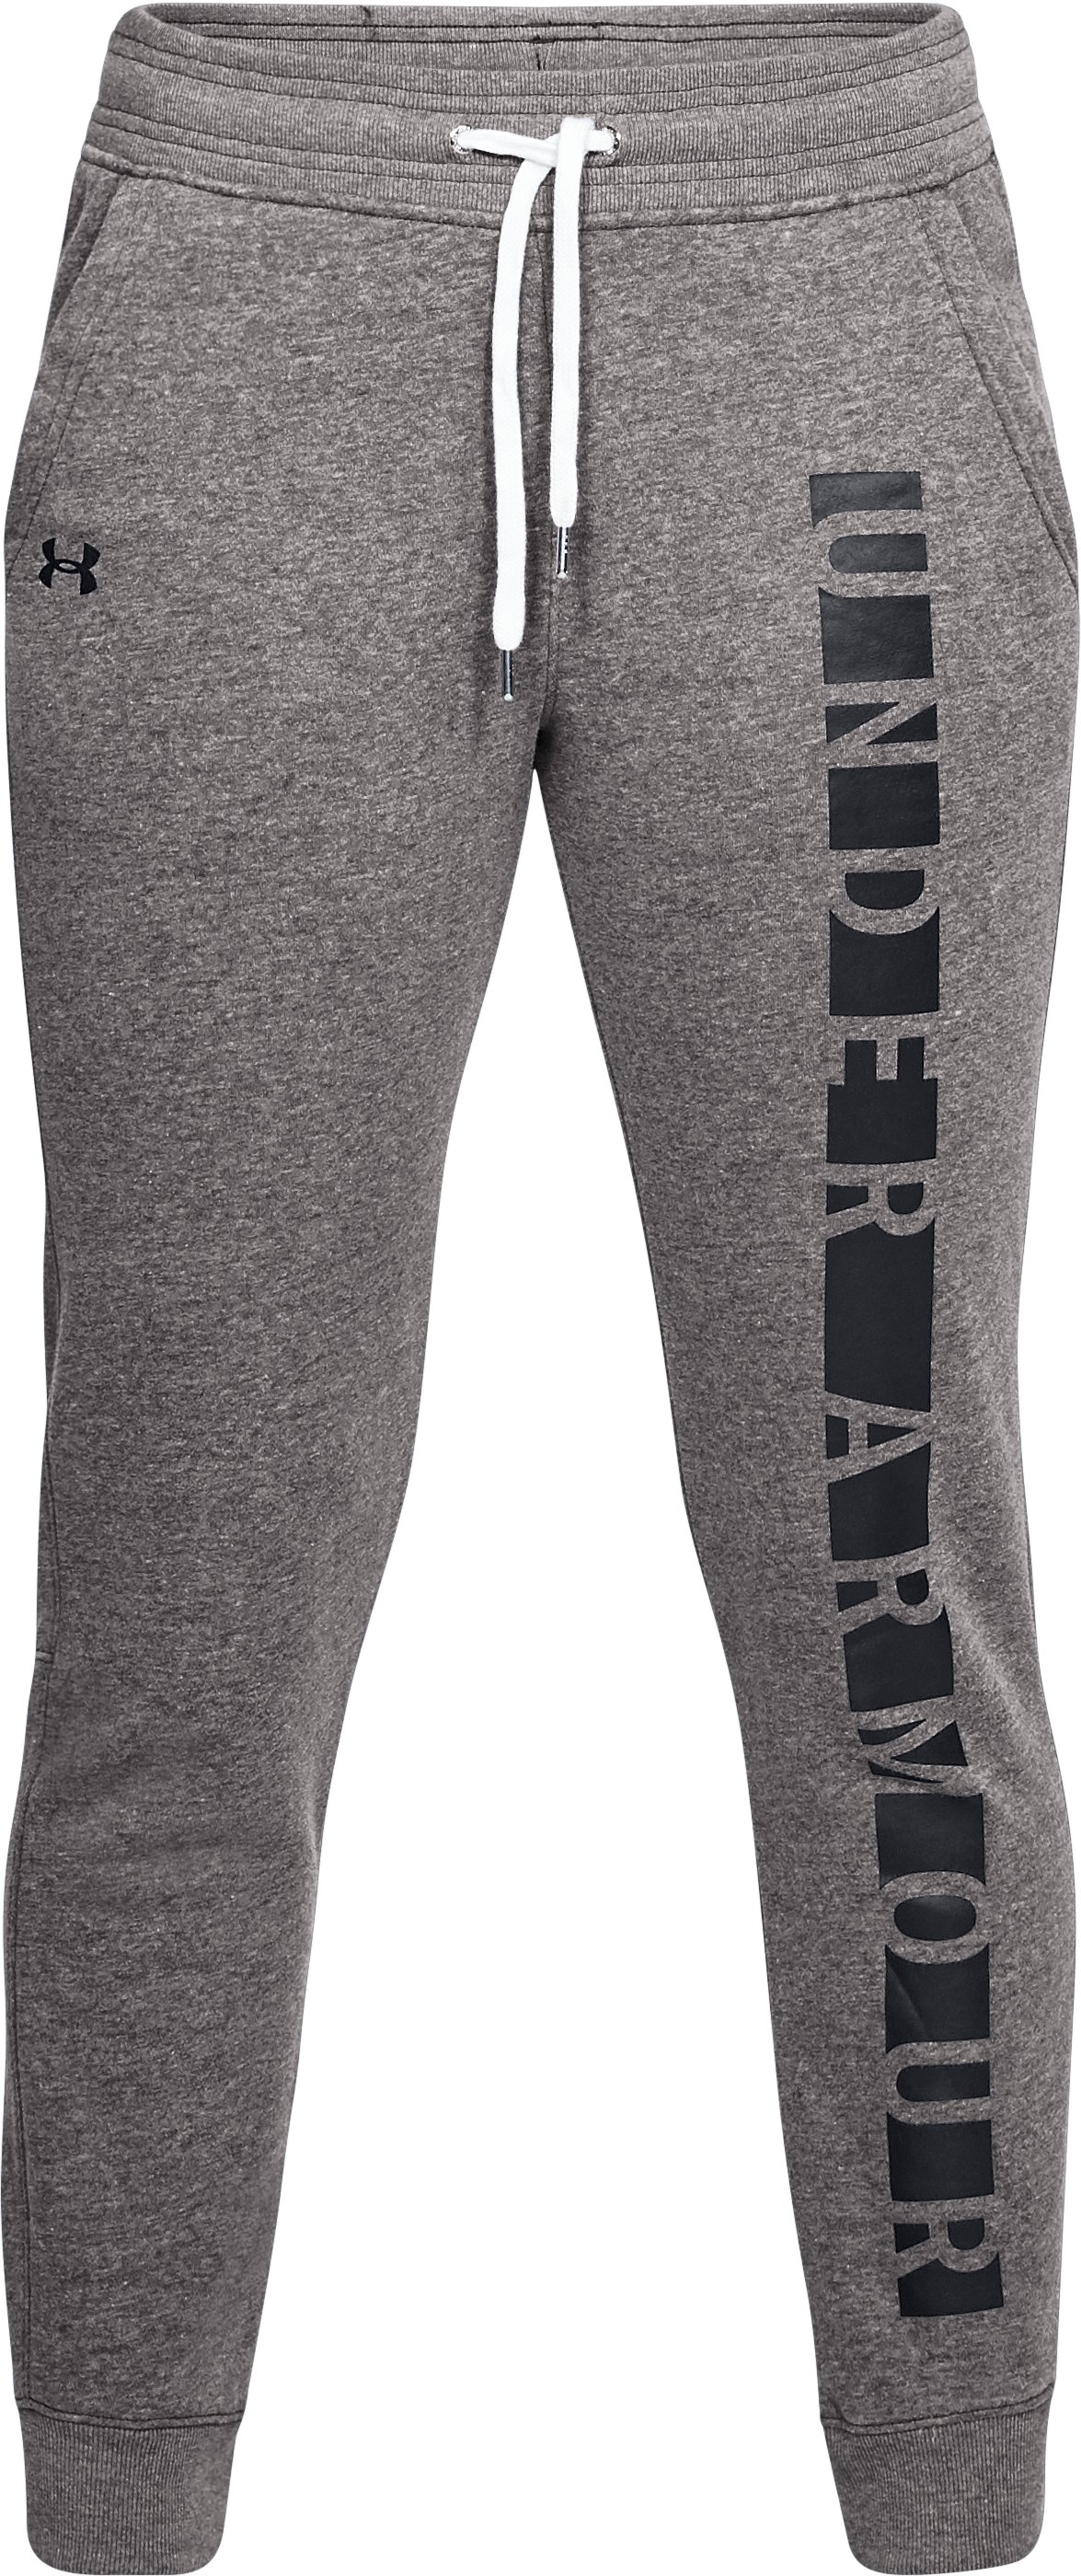 Women's UA Favorite Fleece Graphic Pants, CHARCOAL LIGHT HEATHER, undefined